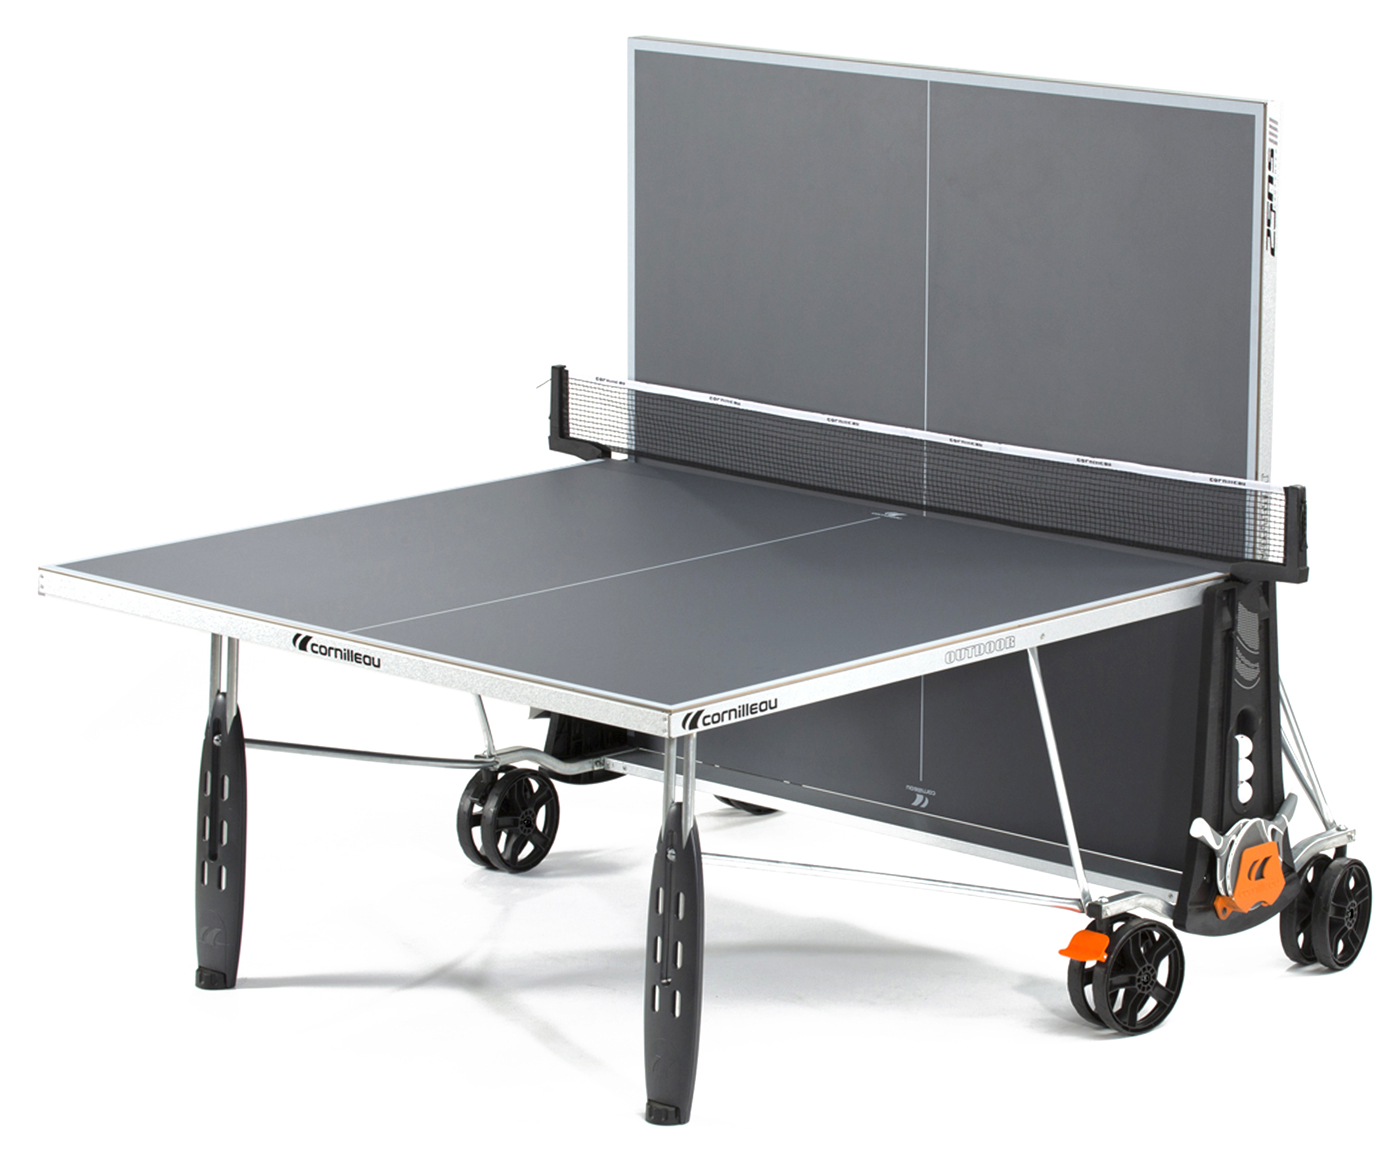 Cornilleau 250s crossover indoor outdoor gray ping pong table - Table ping pong cornilleau outdoor ...